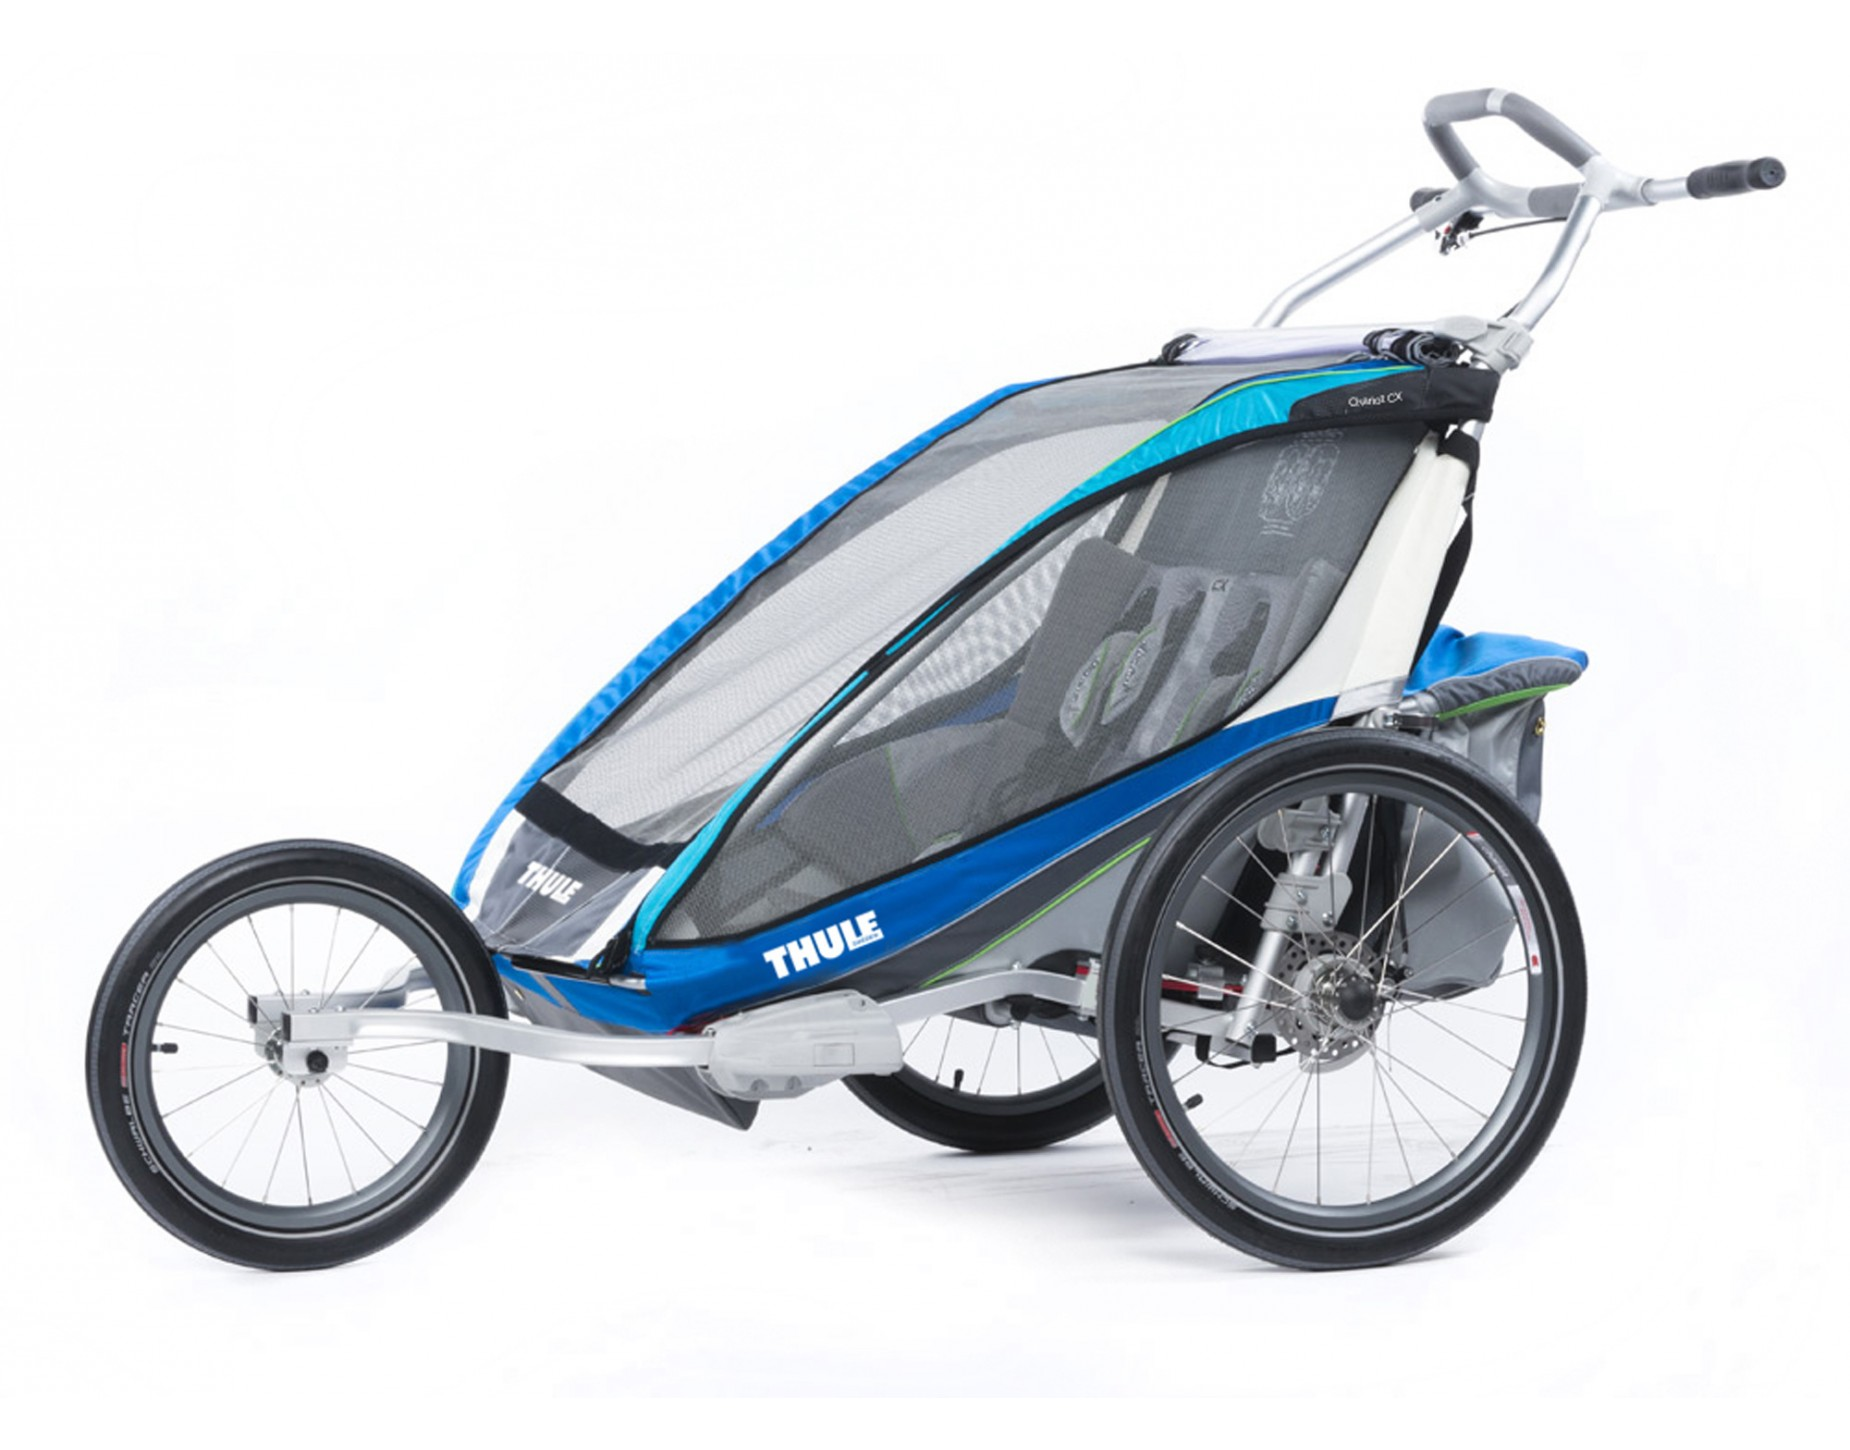 Chariot cx2 bike trailer for sale / Halo 4 release date pc